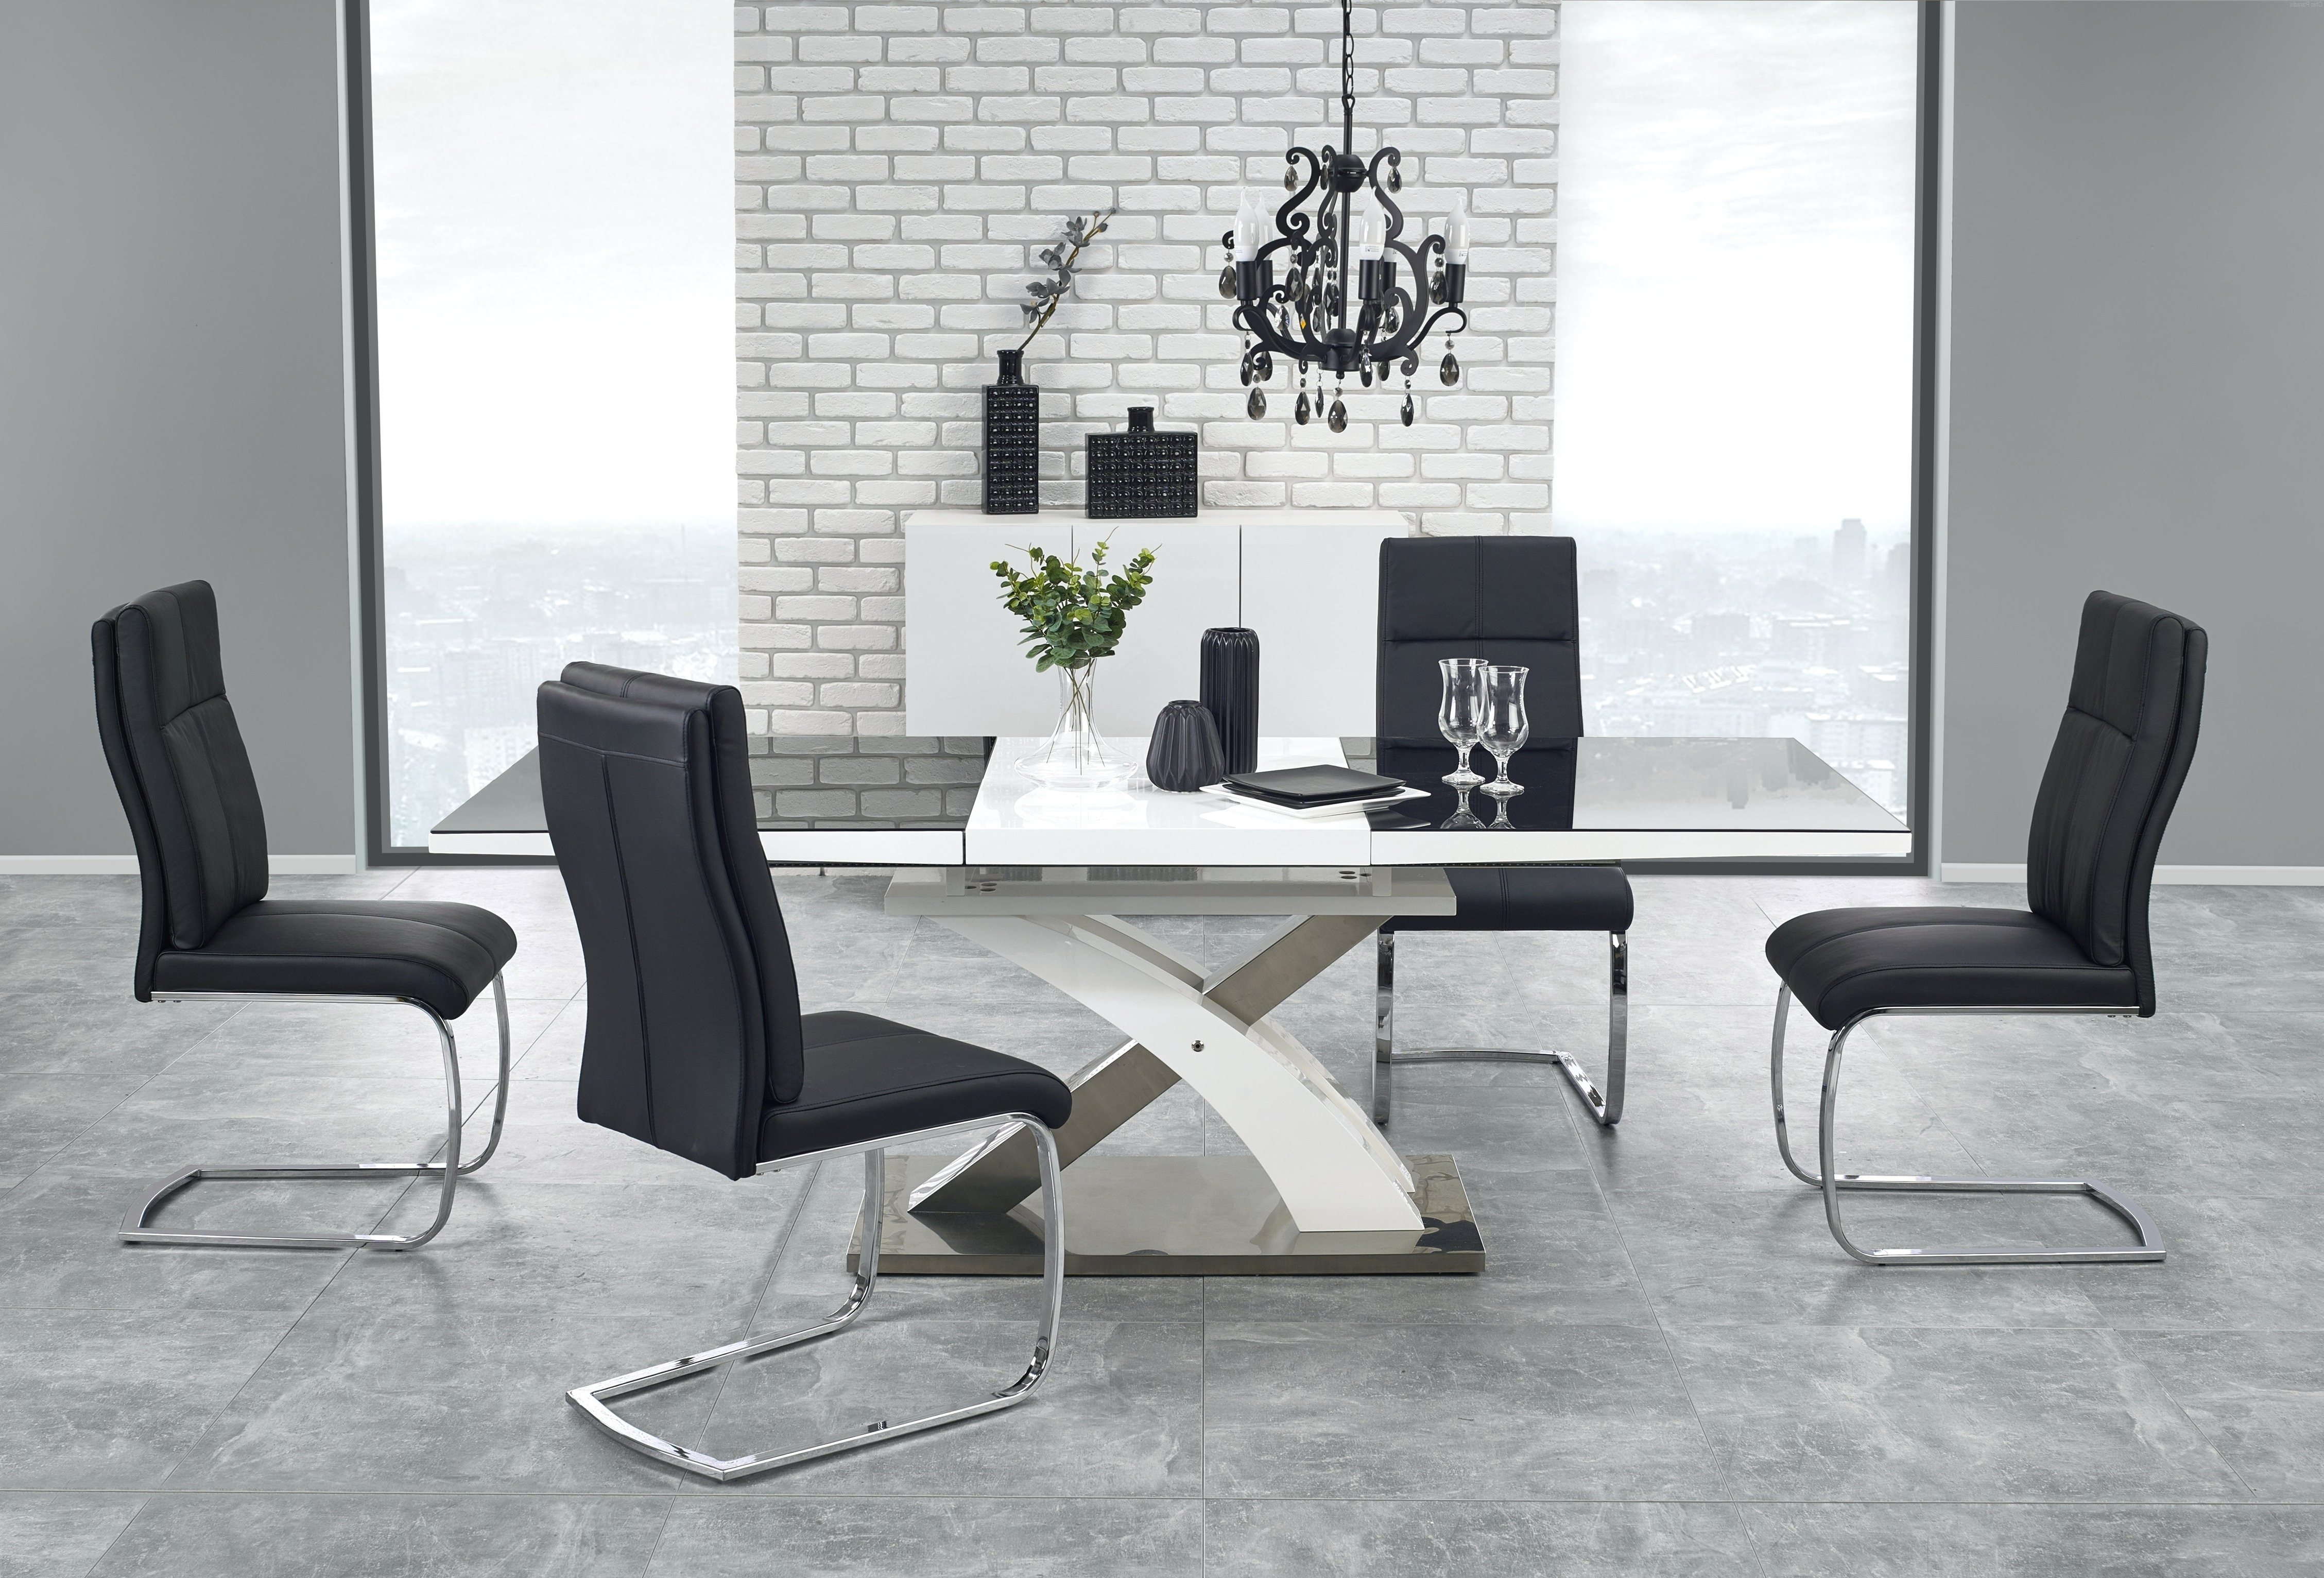 Current Buy Harmony High Gloss White Black Glass Extendable Dining Table 160 In Glass Dining Tables White Chairs (Gallery 20 of 25)